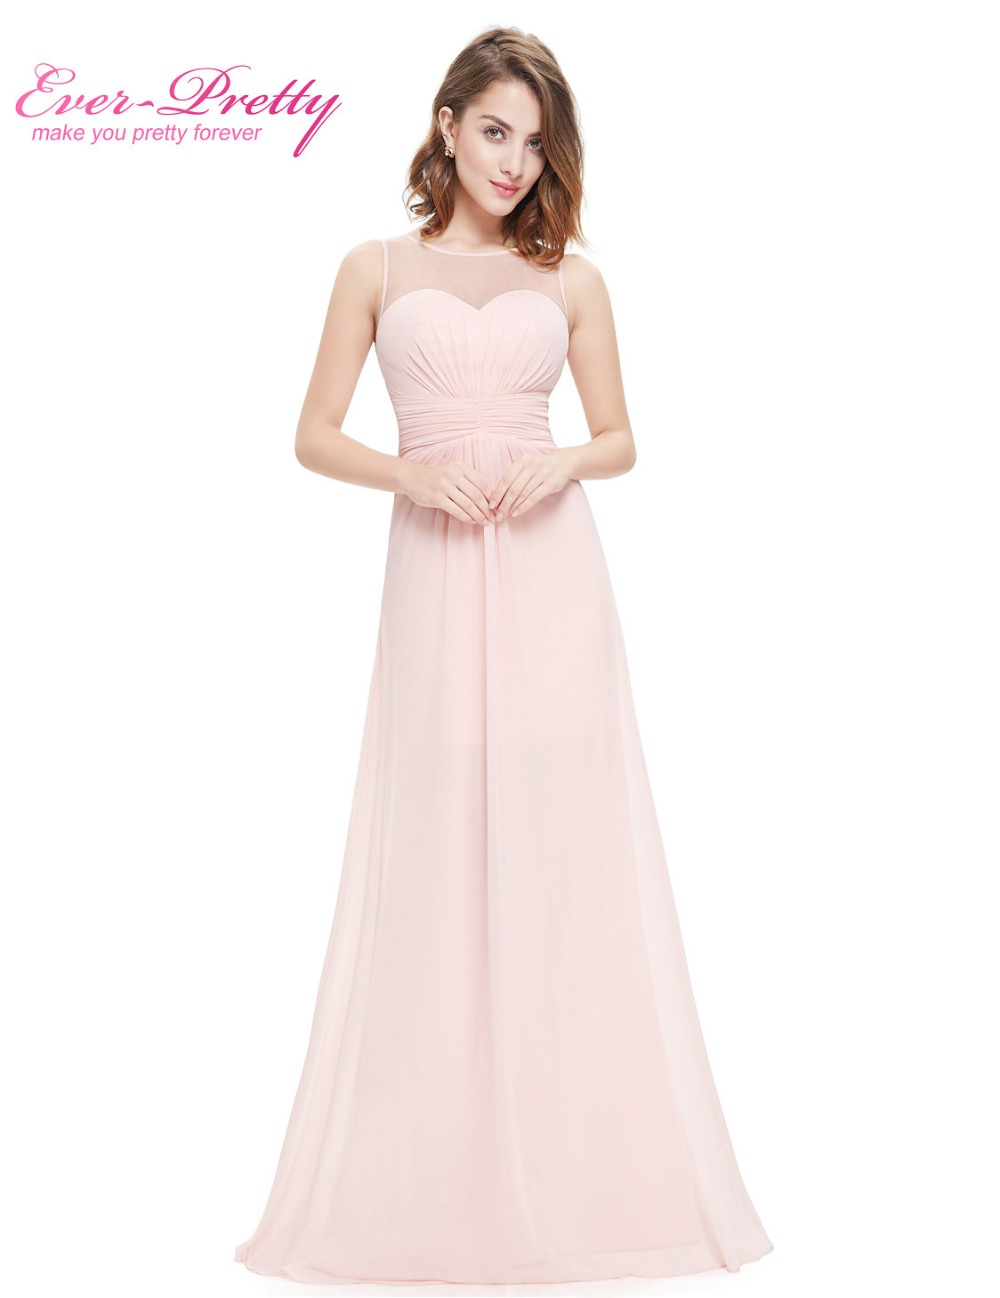 Wedding Party Dress Ever Pretty 2016 New Arrival HE08369 Women ... 97accaad0242